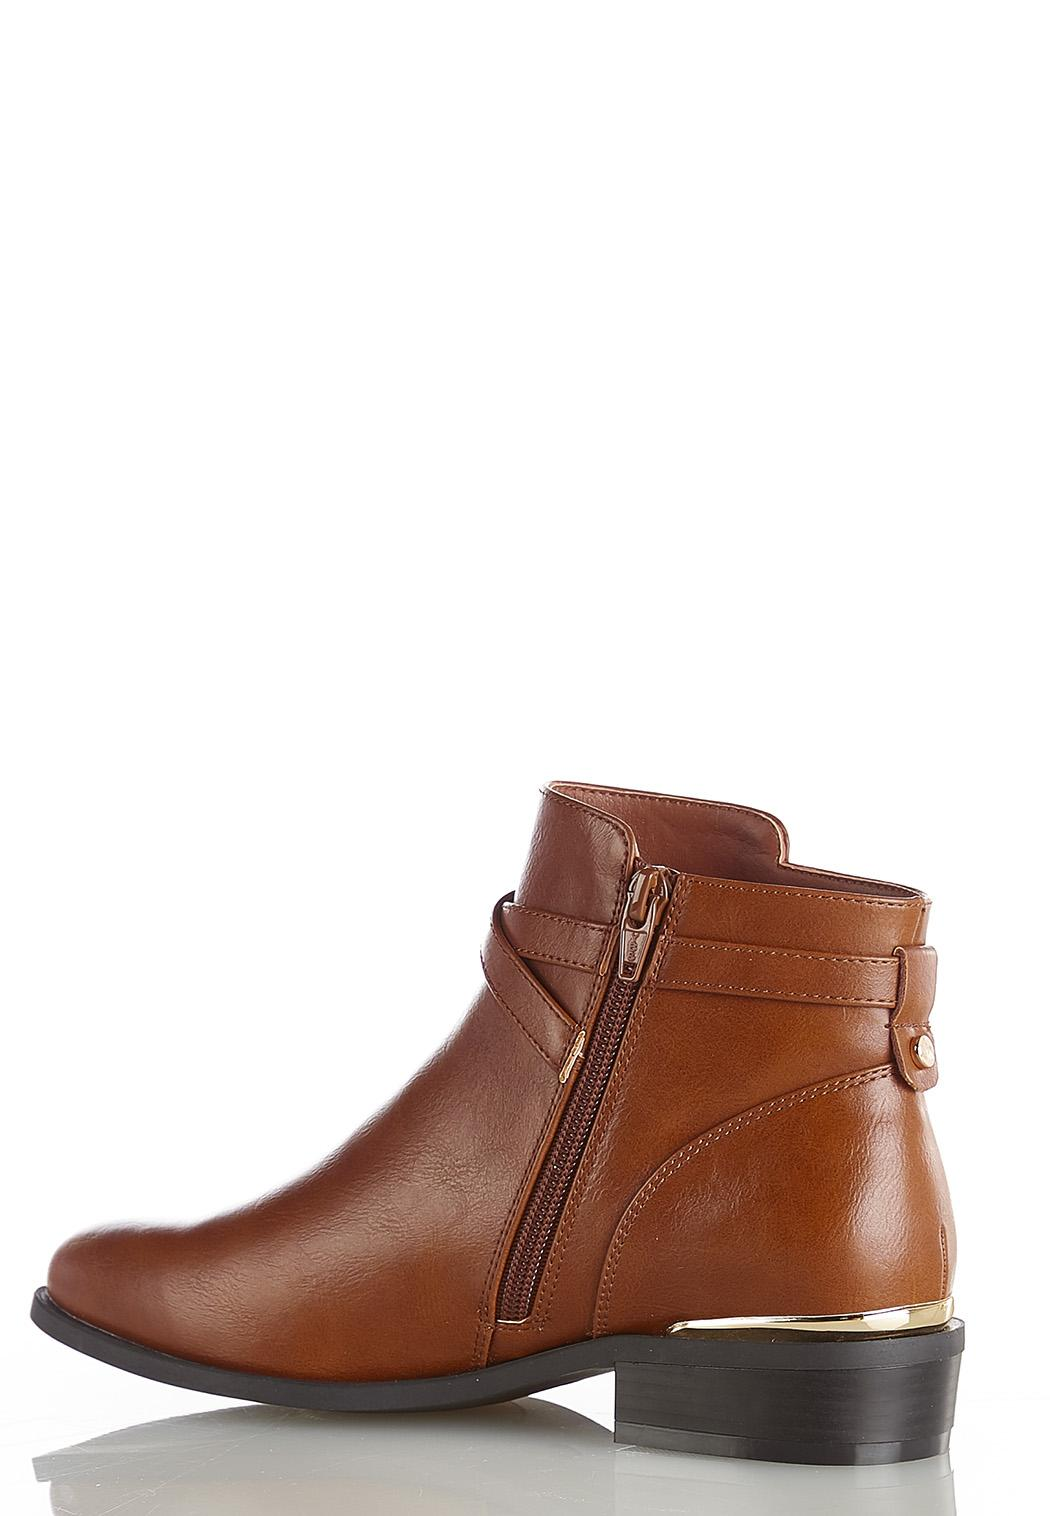 Buckle Strap Ankle Boots (Item #44431497)